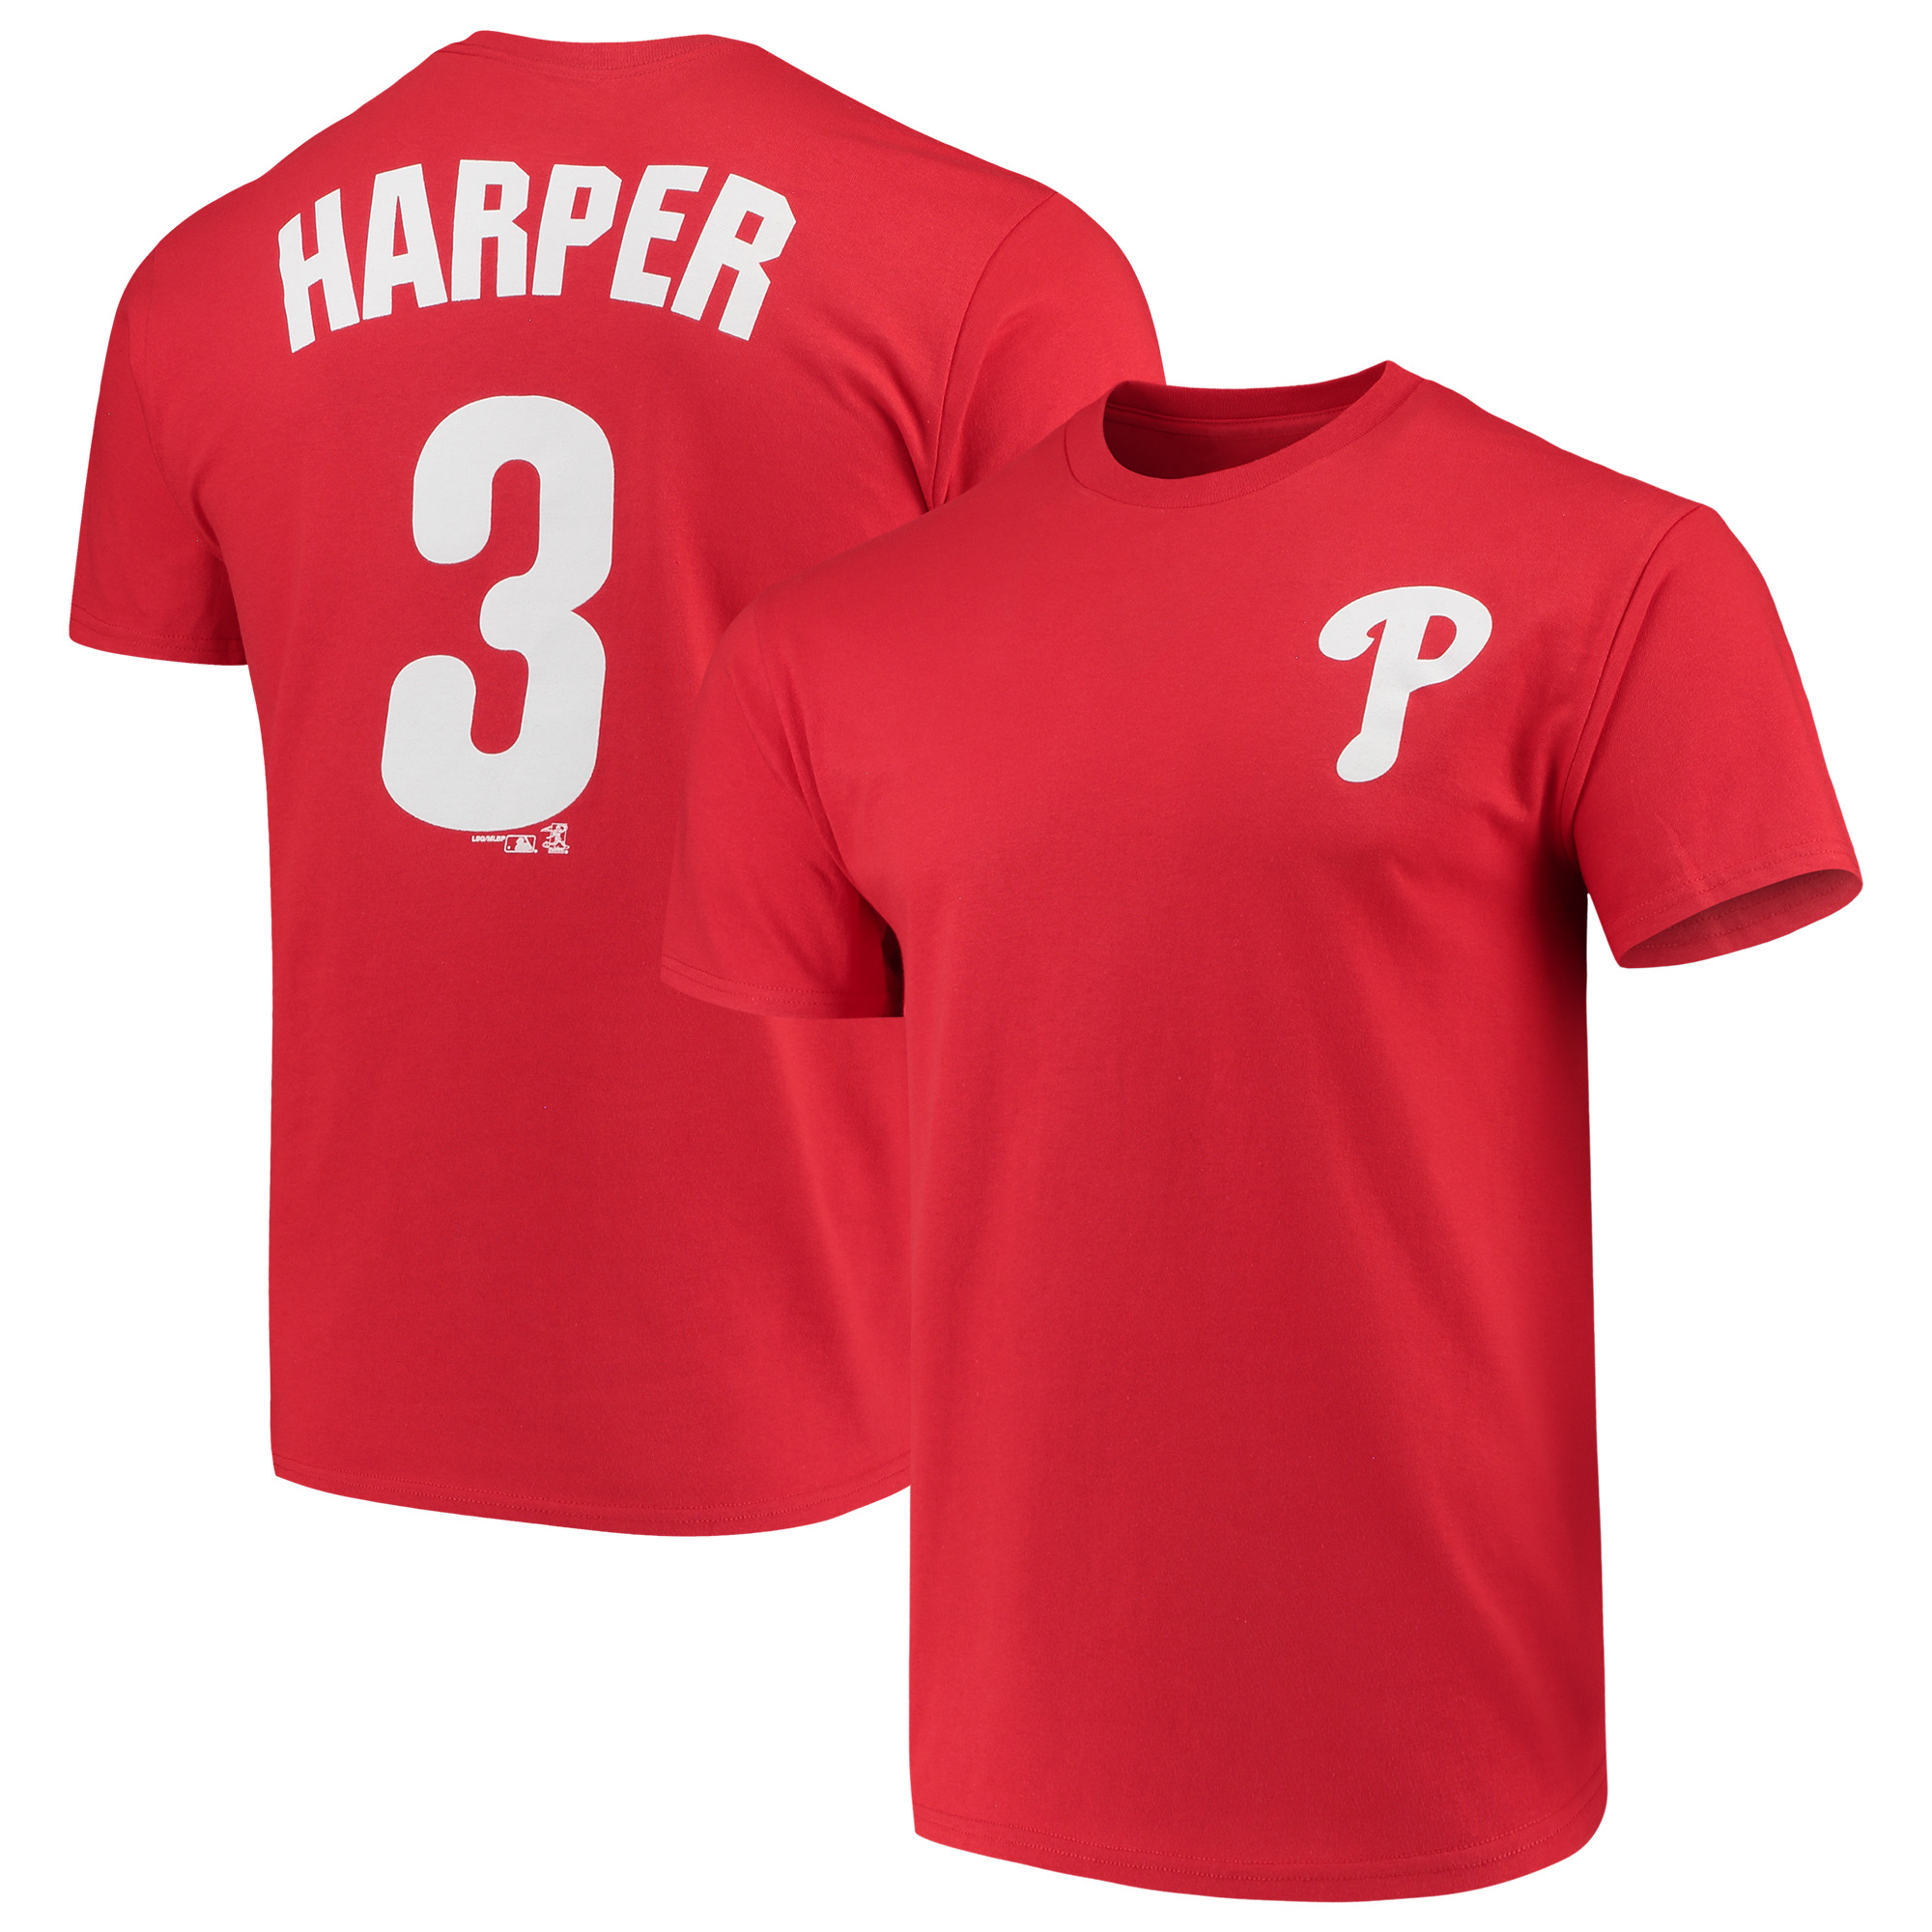 lowest price 6f7c3 6a7b2 Men's Majestic Bryce Harper Red Philadelphia Phillies Name & Number T-Shirt